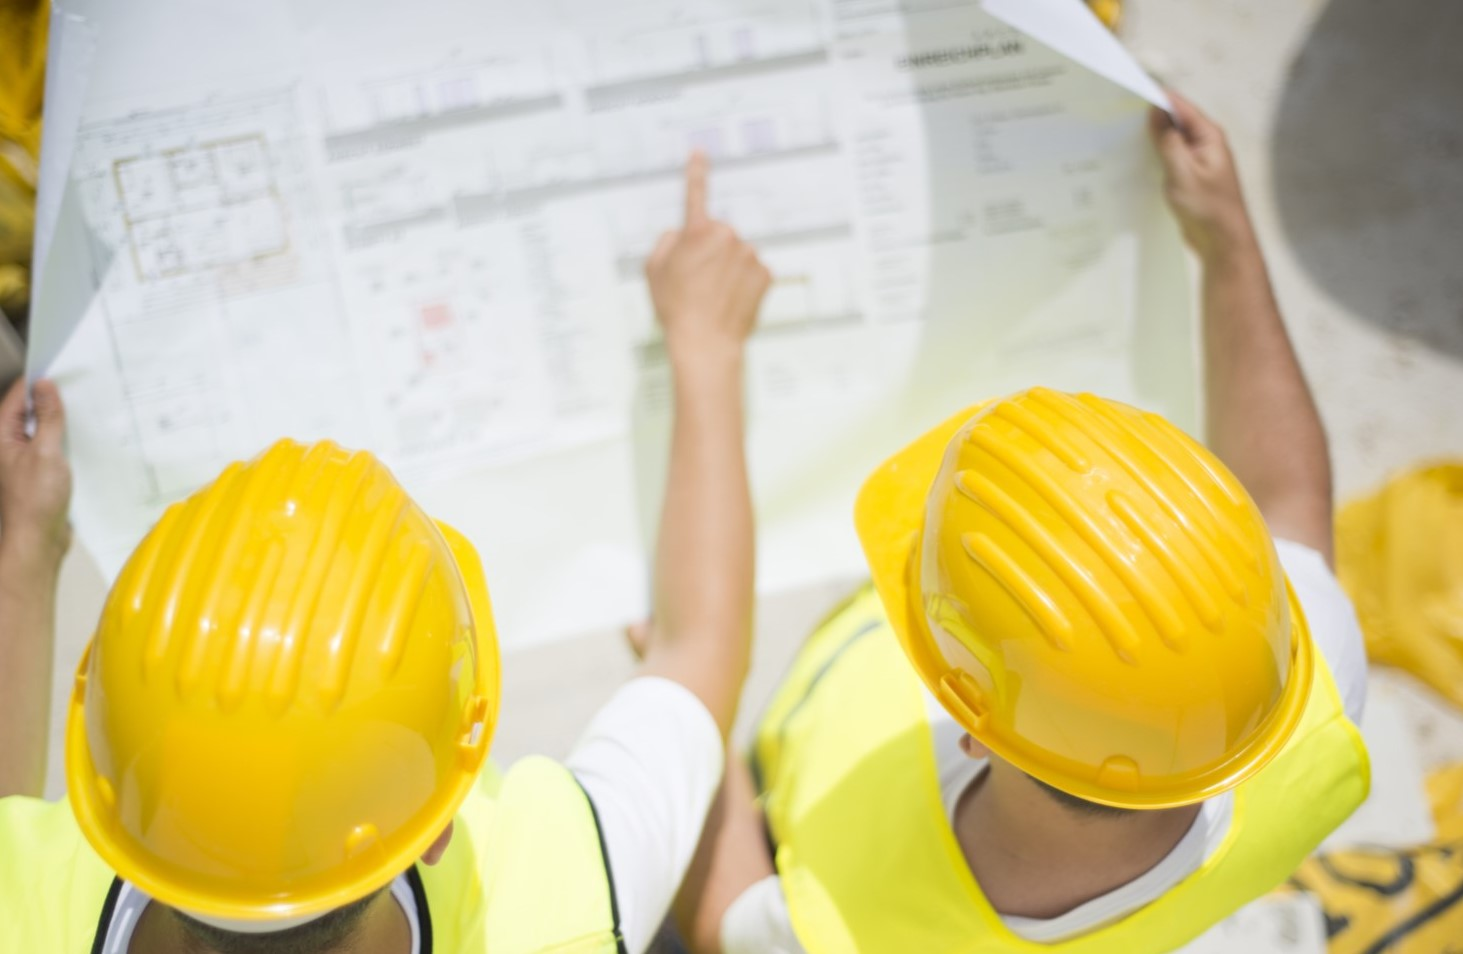 Construction Project Delayed? Avoid Sending Generic Claim Letters in Times Like These